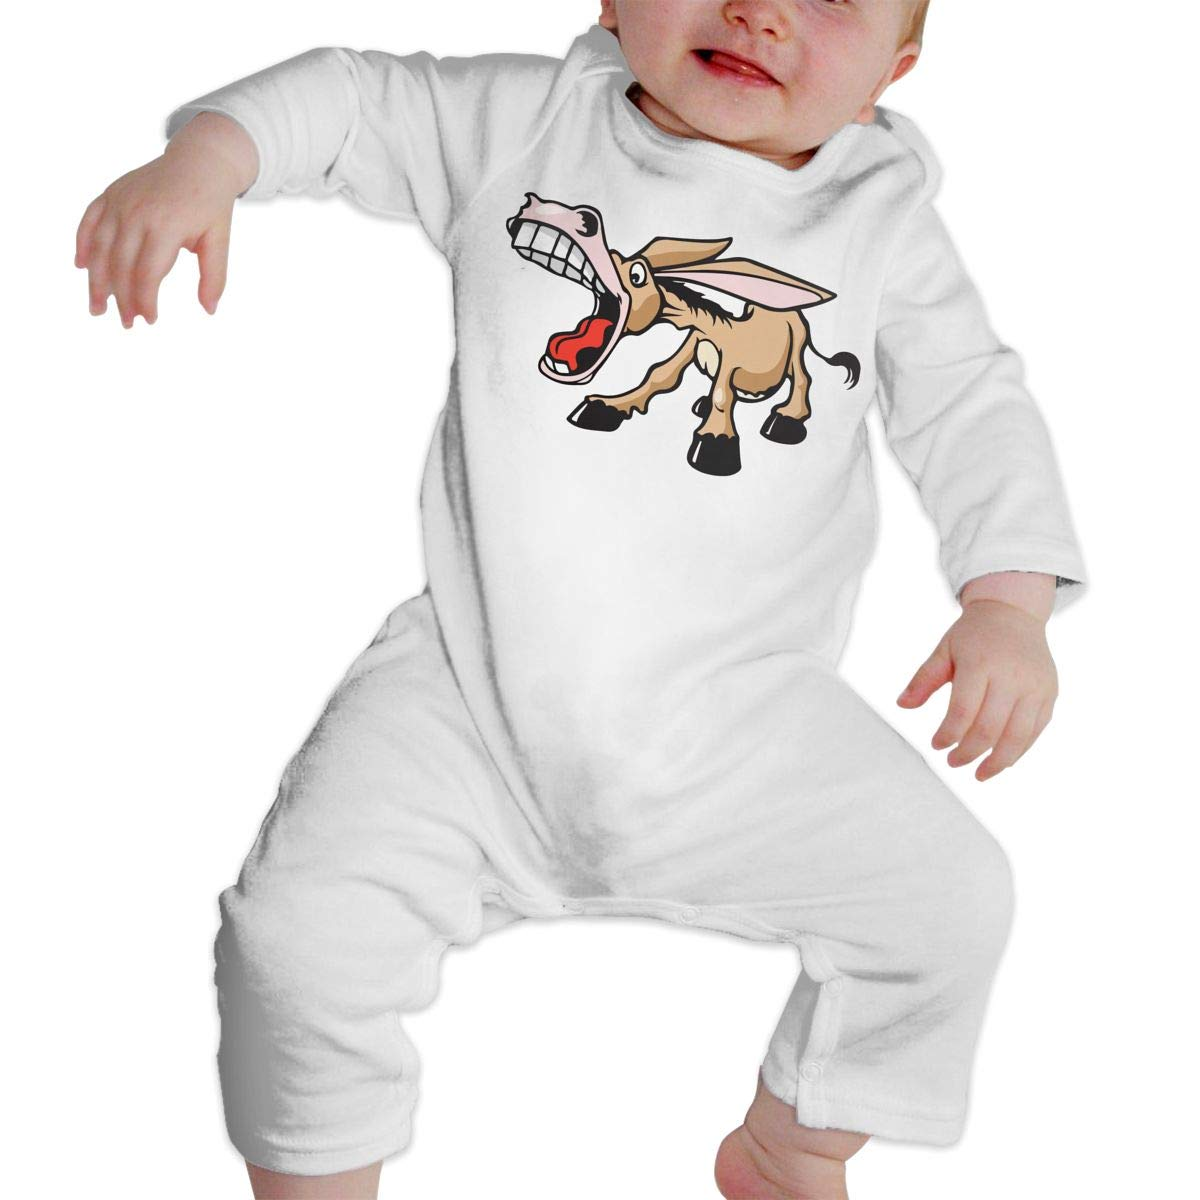 A1BY-5US Baby Infant Toddler Cotton Long Sleeve Braying Donkey Climb Jumpsuit Funny Printed Romper Clothes